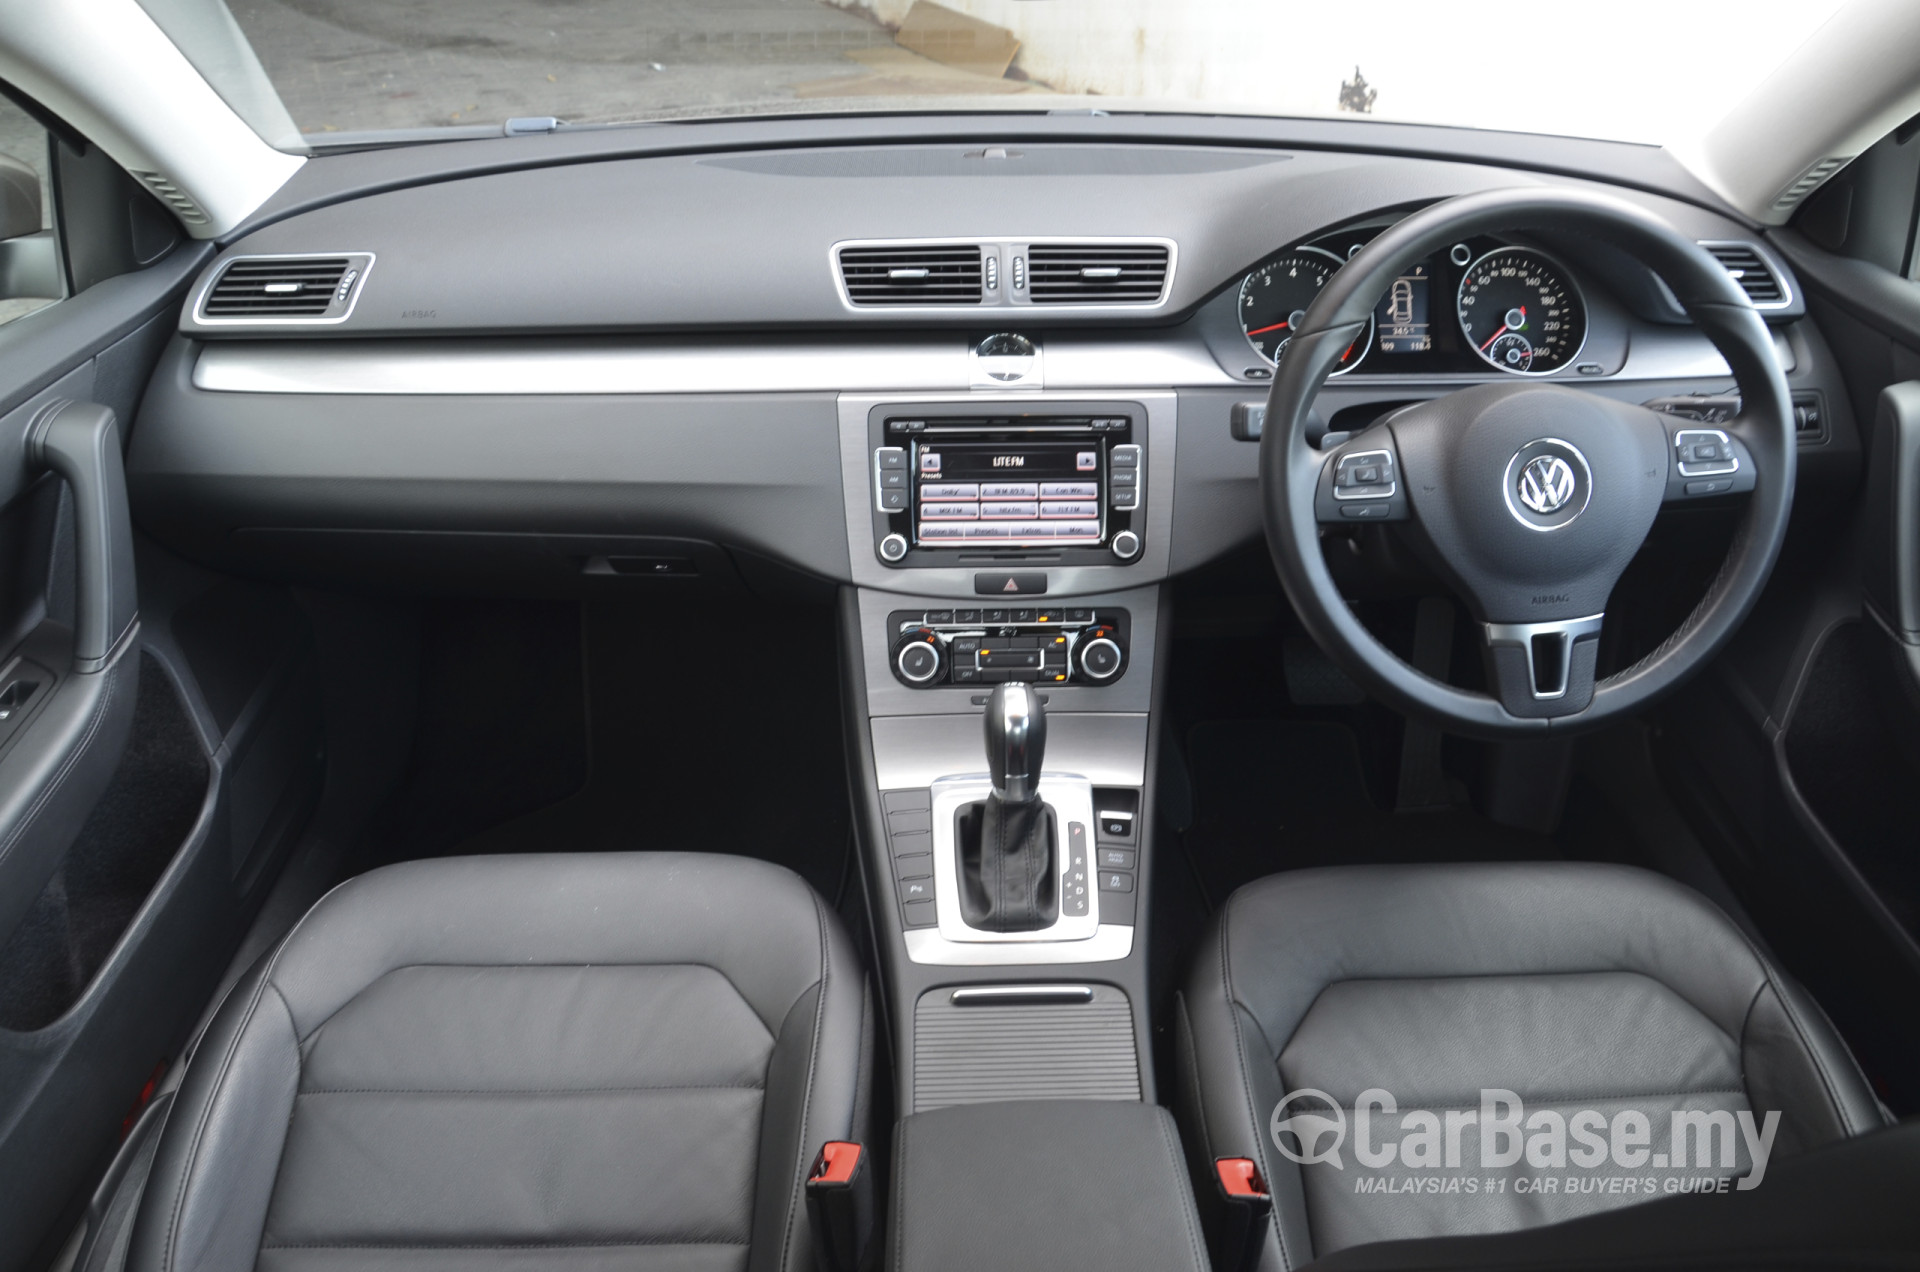 Volkswagen Passat B7 (2011) Interior Image #12873 in Malaysia - Reviews, Specs, Prices - CarBase.my